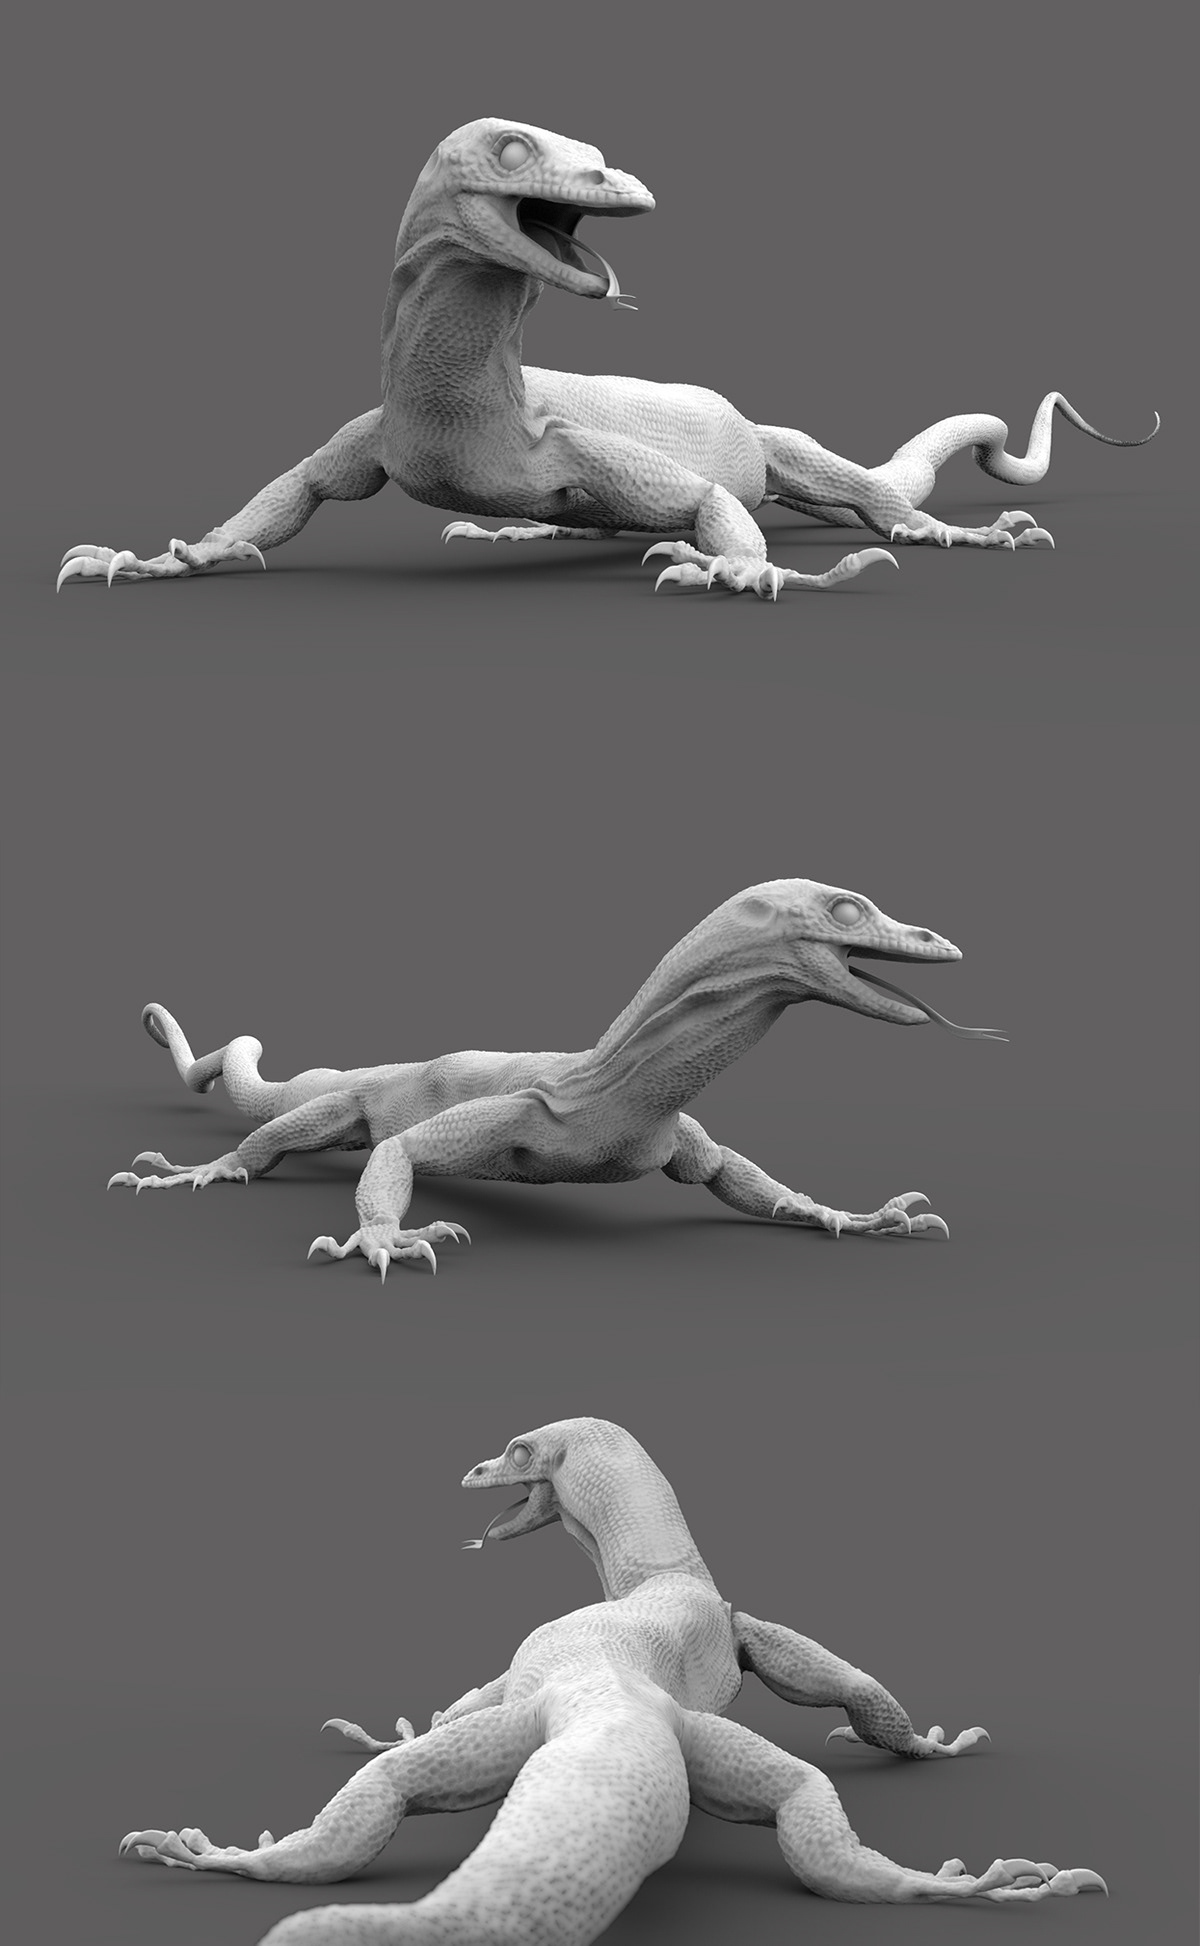 ZBrush sculpting on Wacom Gallery